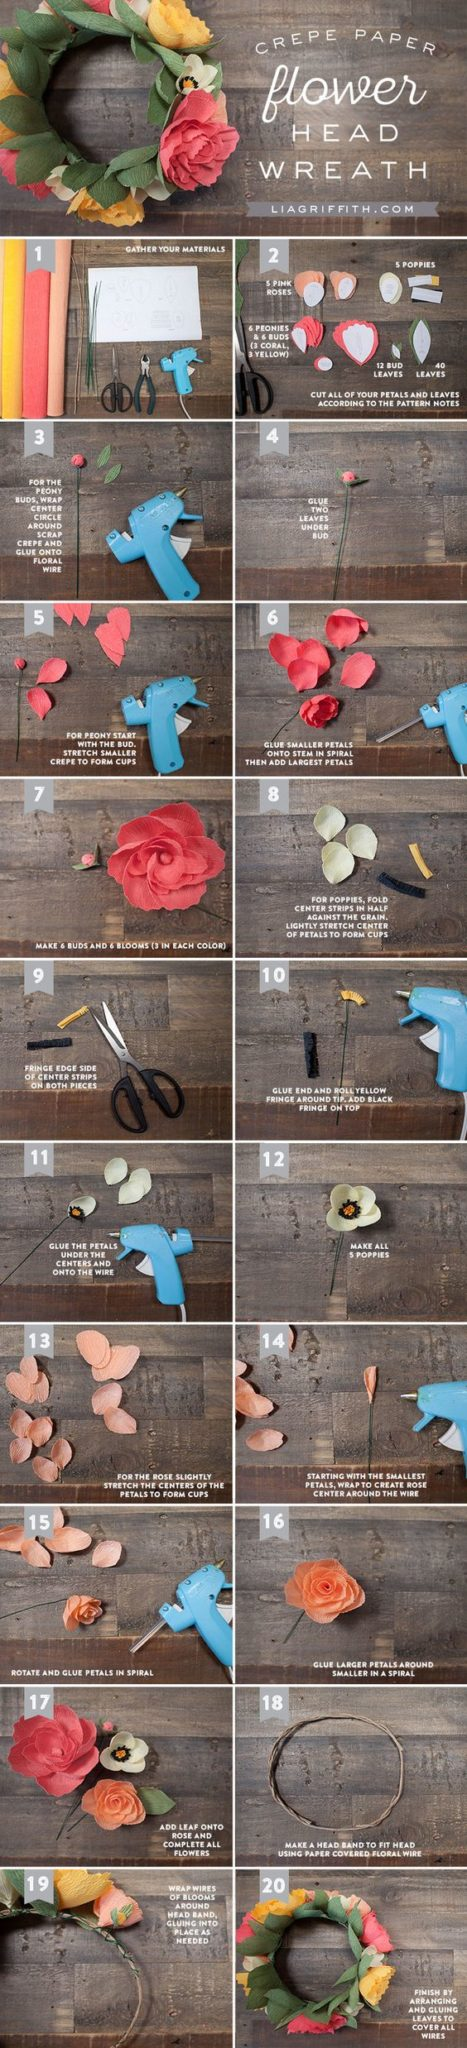 DIY Crepe Paper Flower Head Wreath Pictures, Photos, and Images for Facebook, Tumblr, Pinterest, and Twitter: